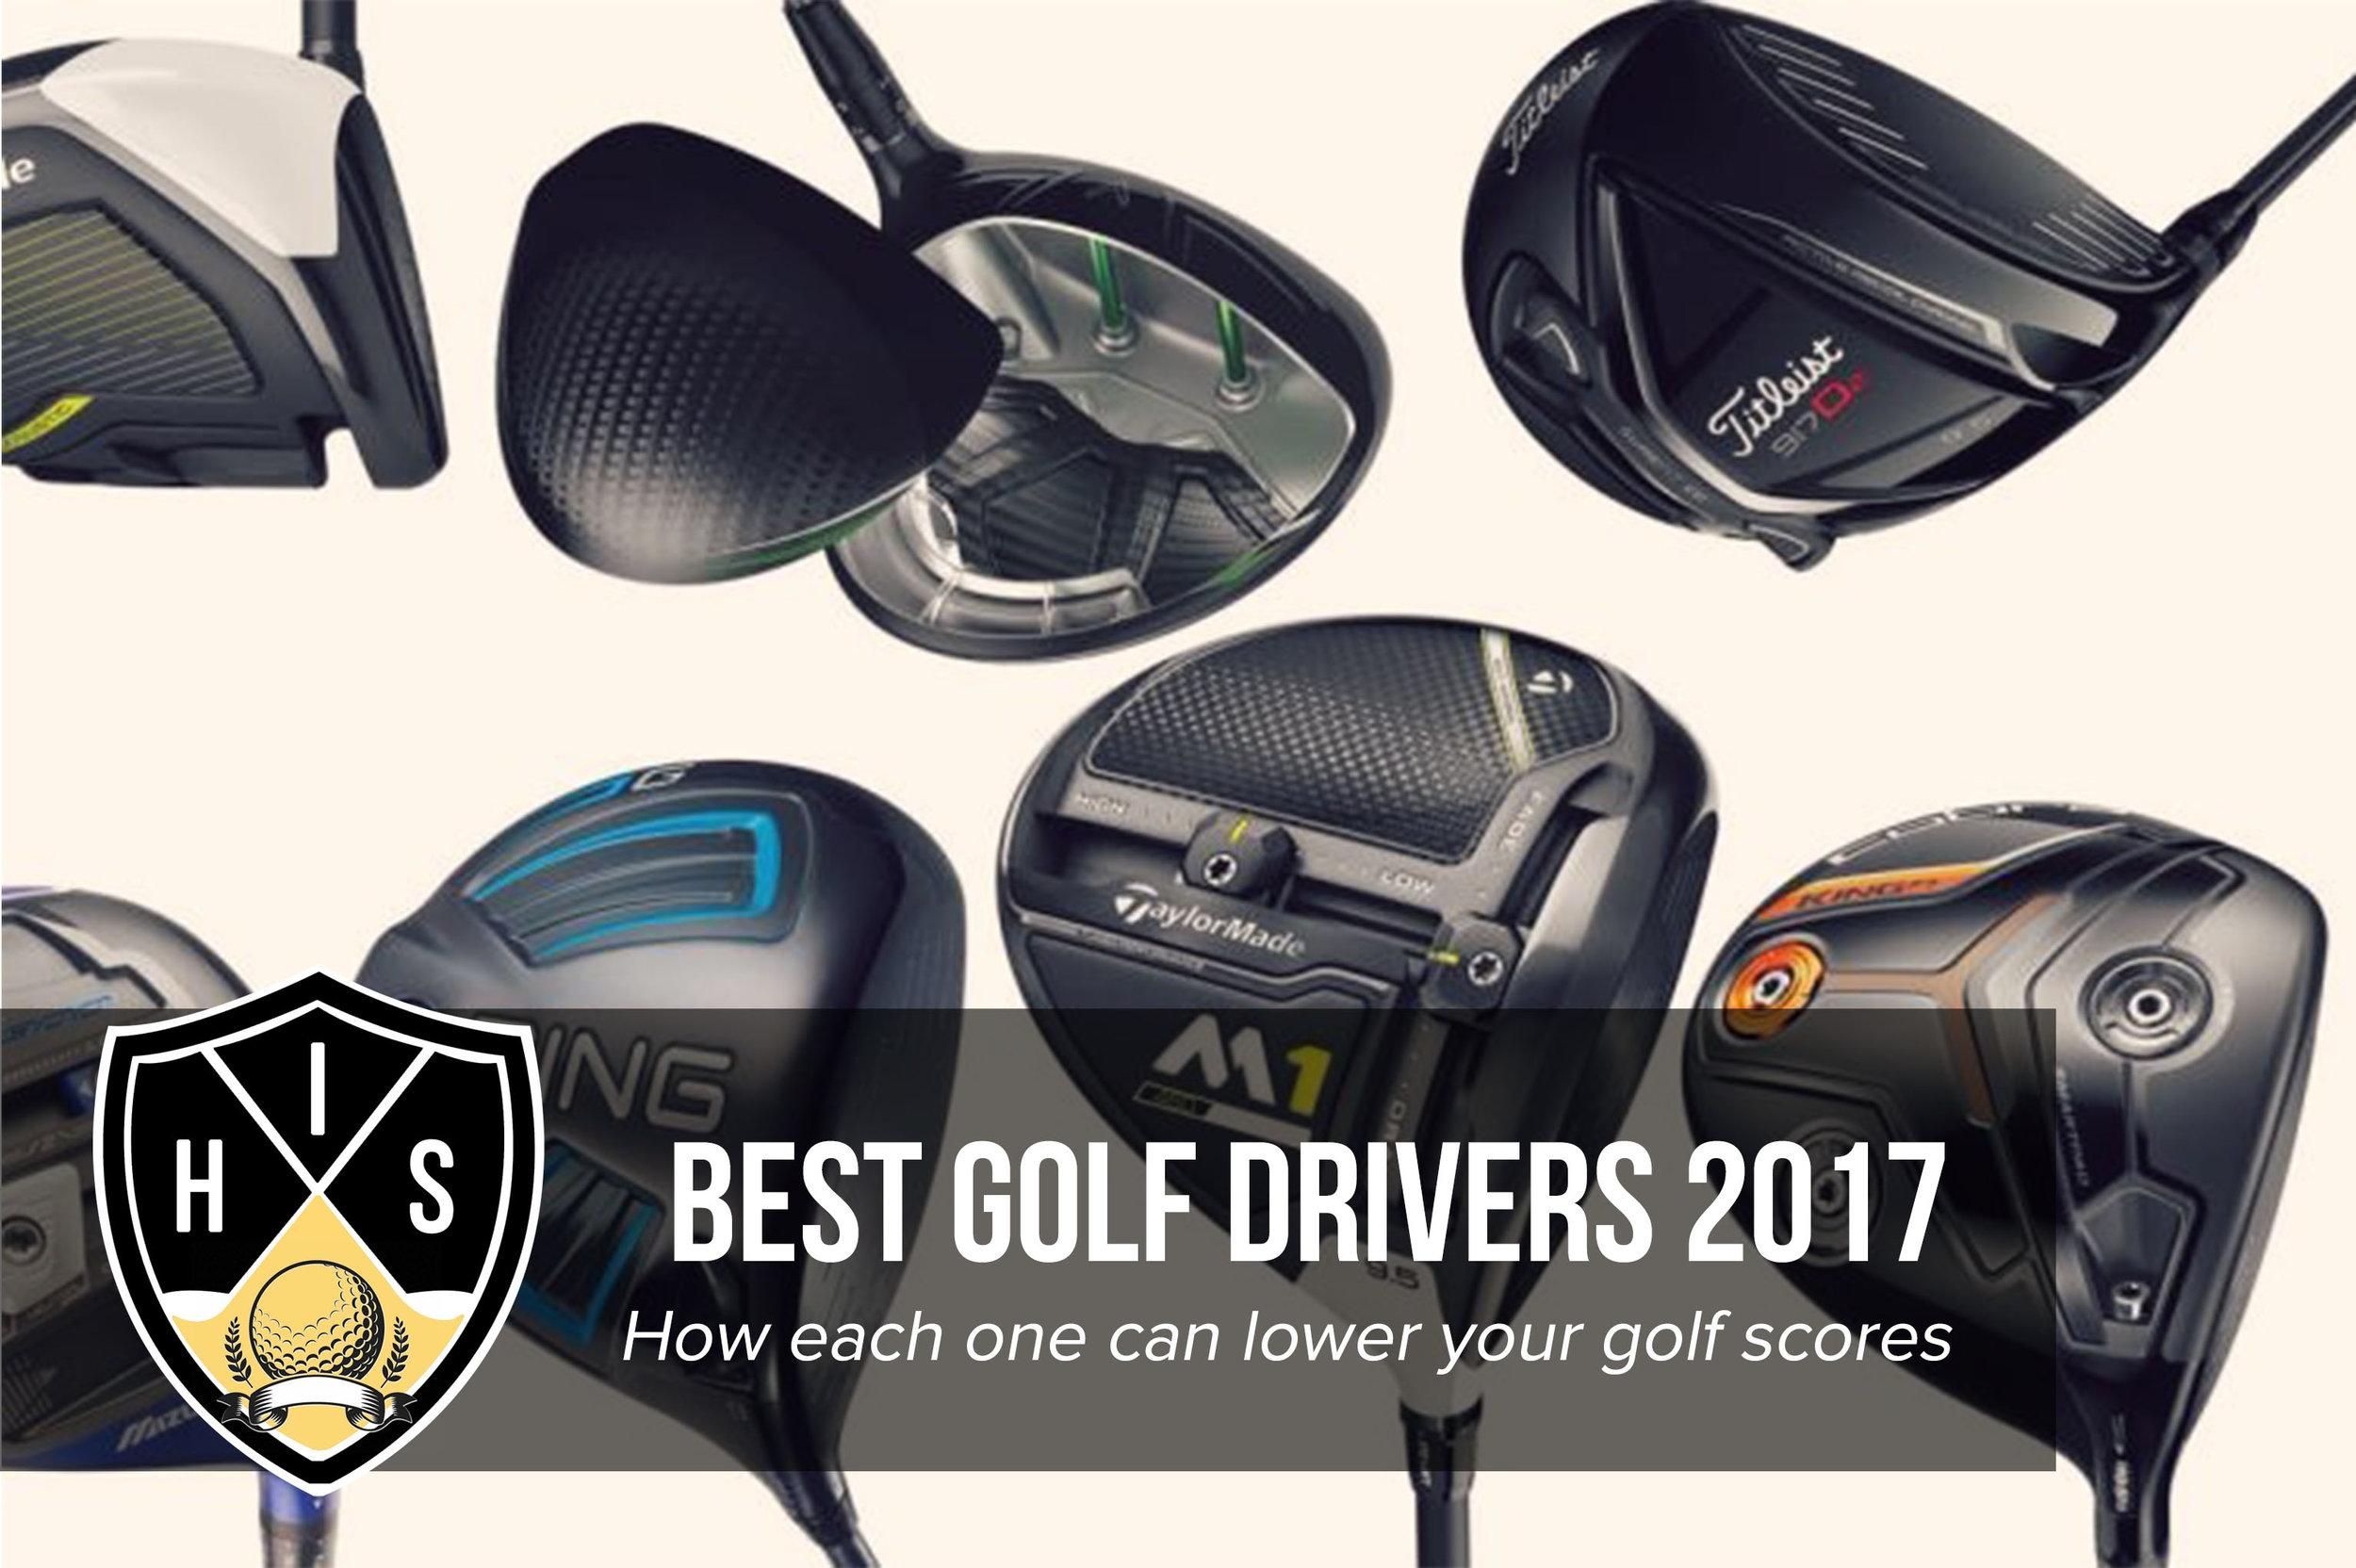 Best Golf Drivers 2017 Which One Is Best For Your Game Hitting It Solid Play Better Golf With Next Level Golf Instruction